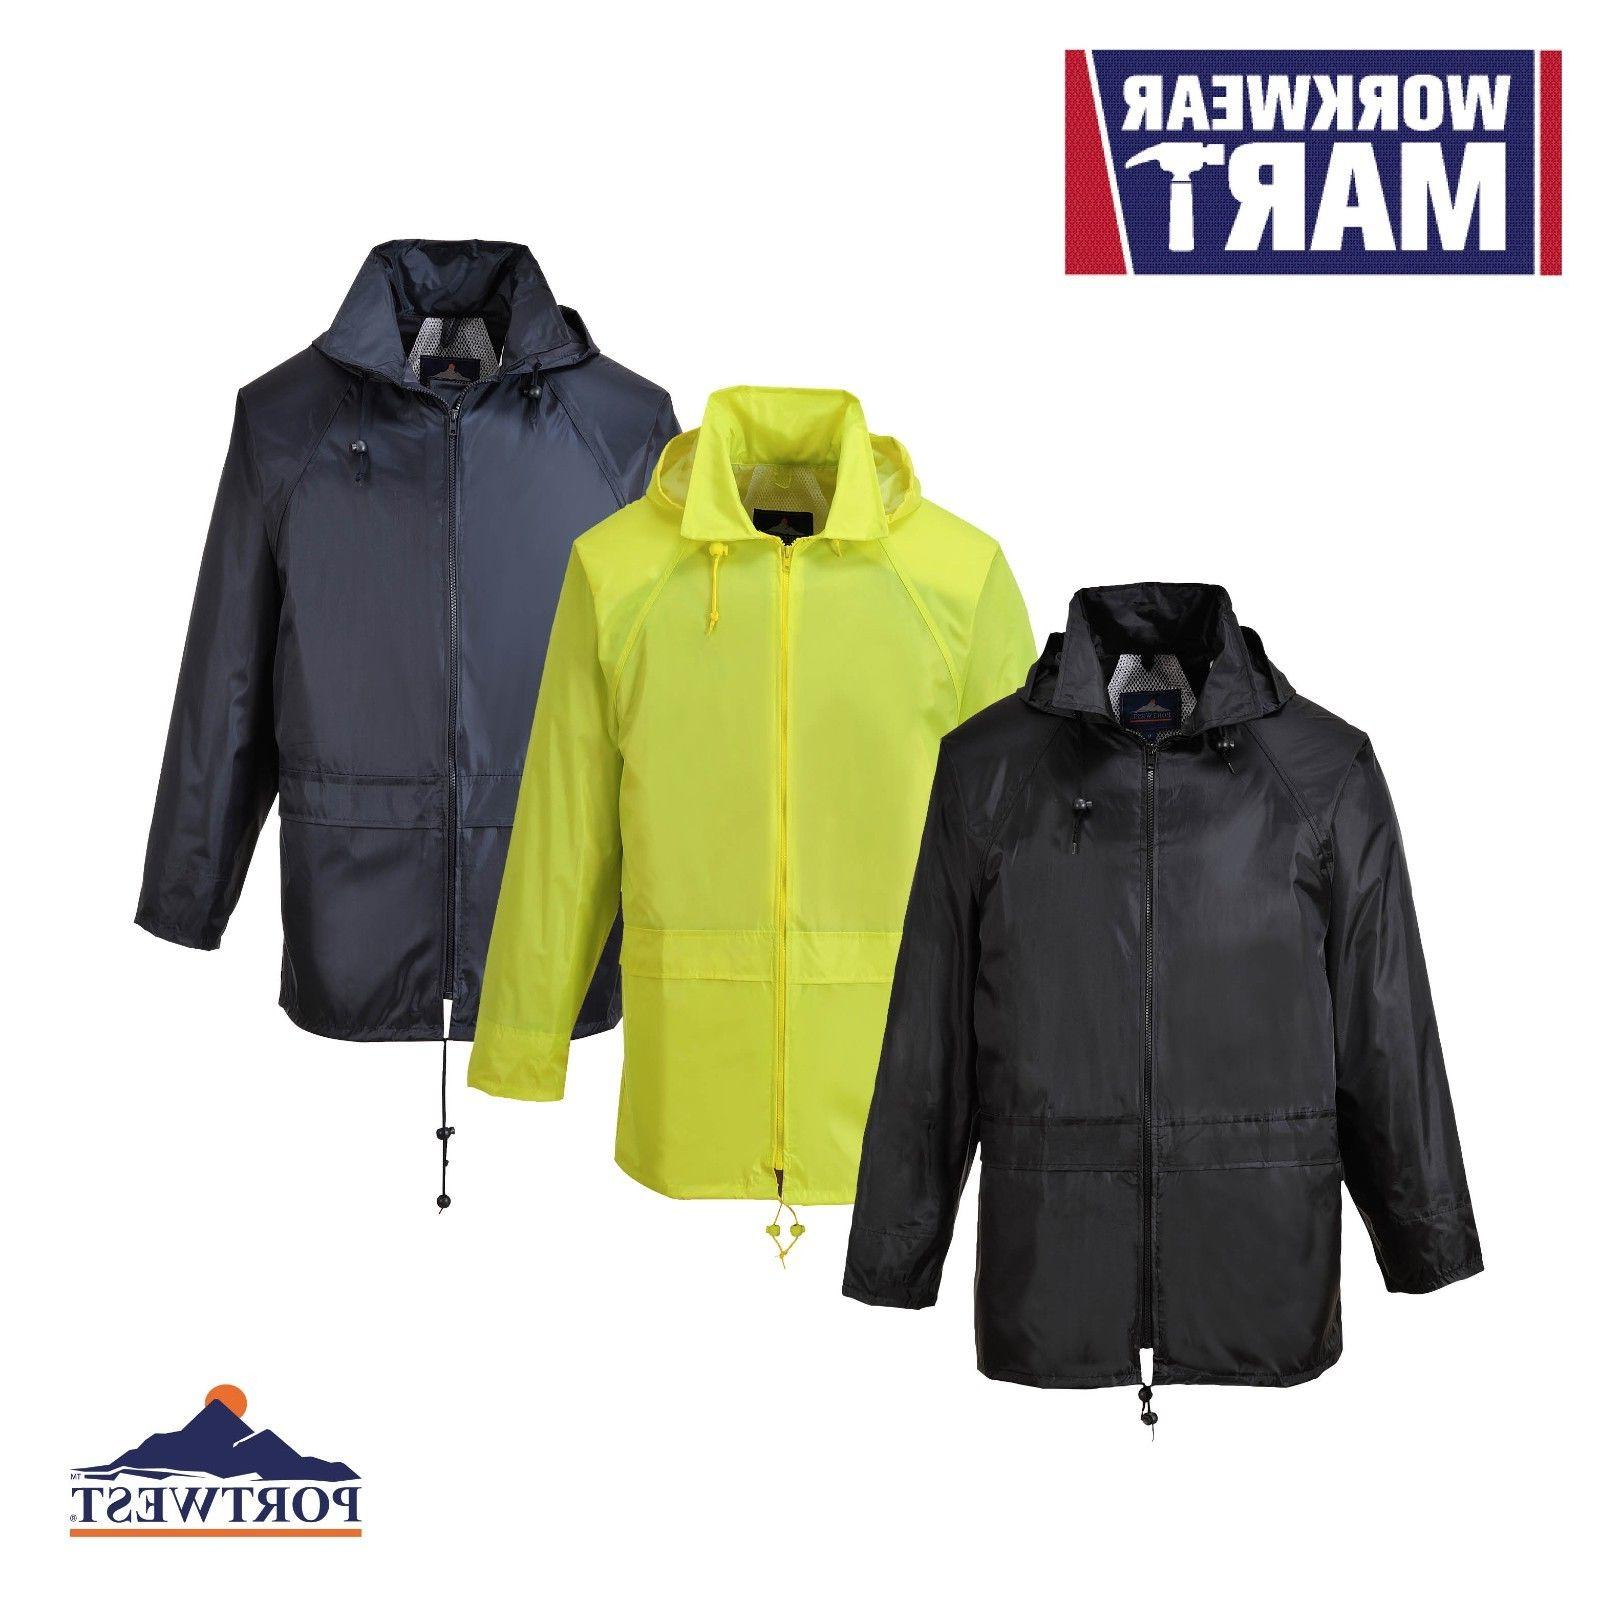 Portwest Classic Jacket waterproof with hood